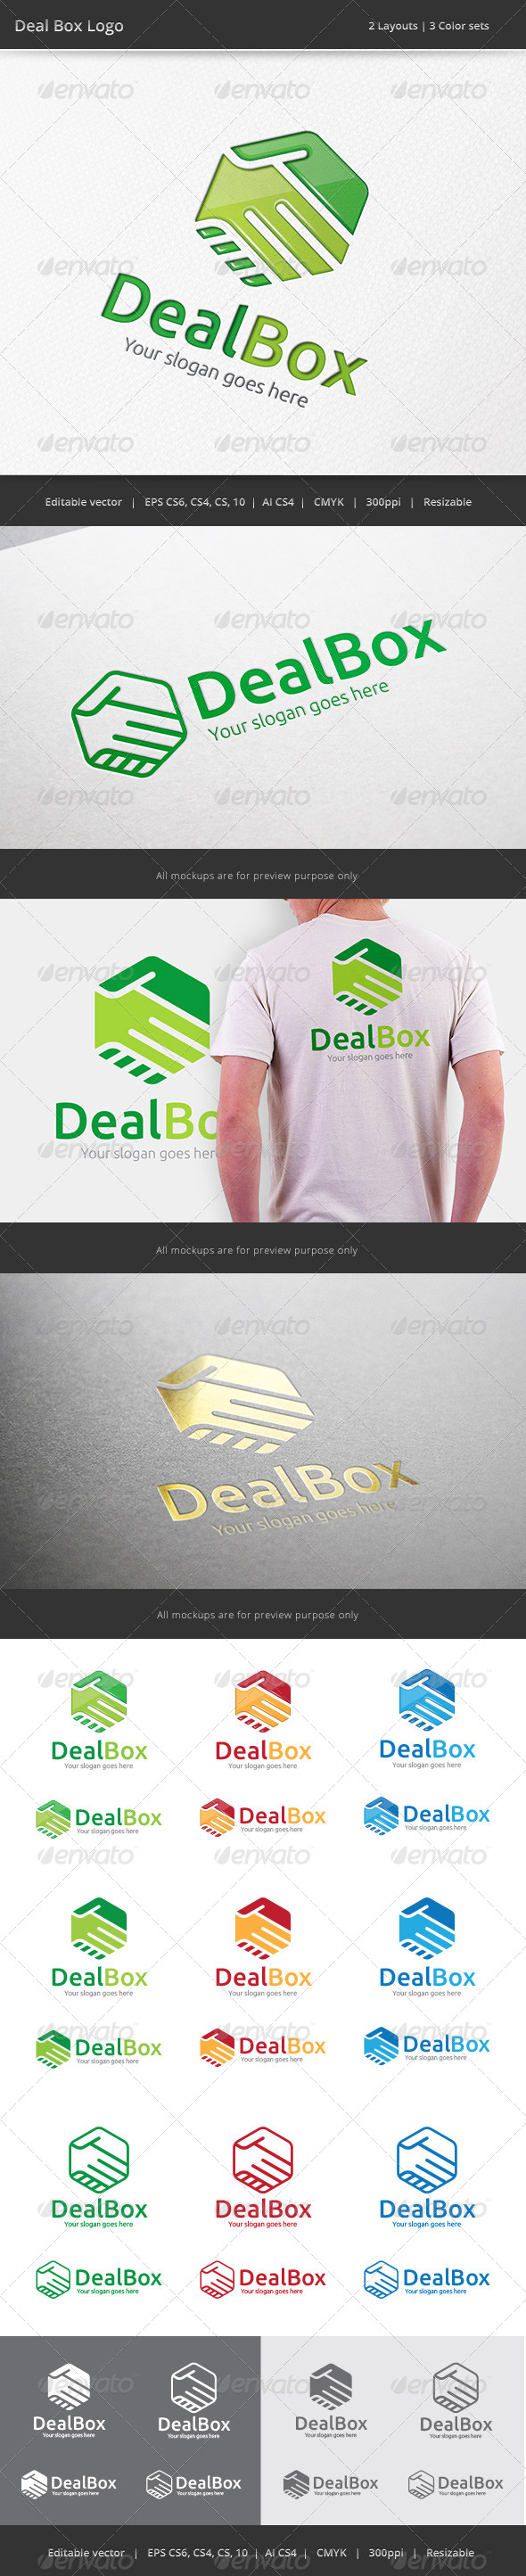 GraphicRiver Deal Box Hand Shake Logo 7506272